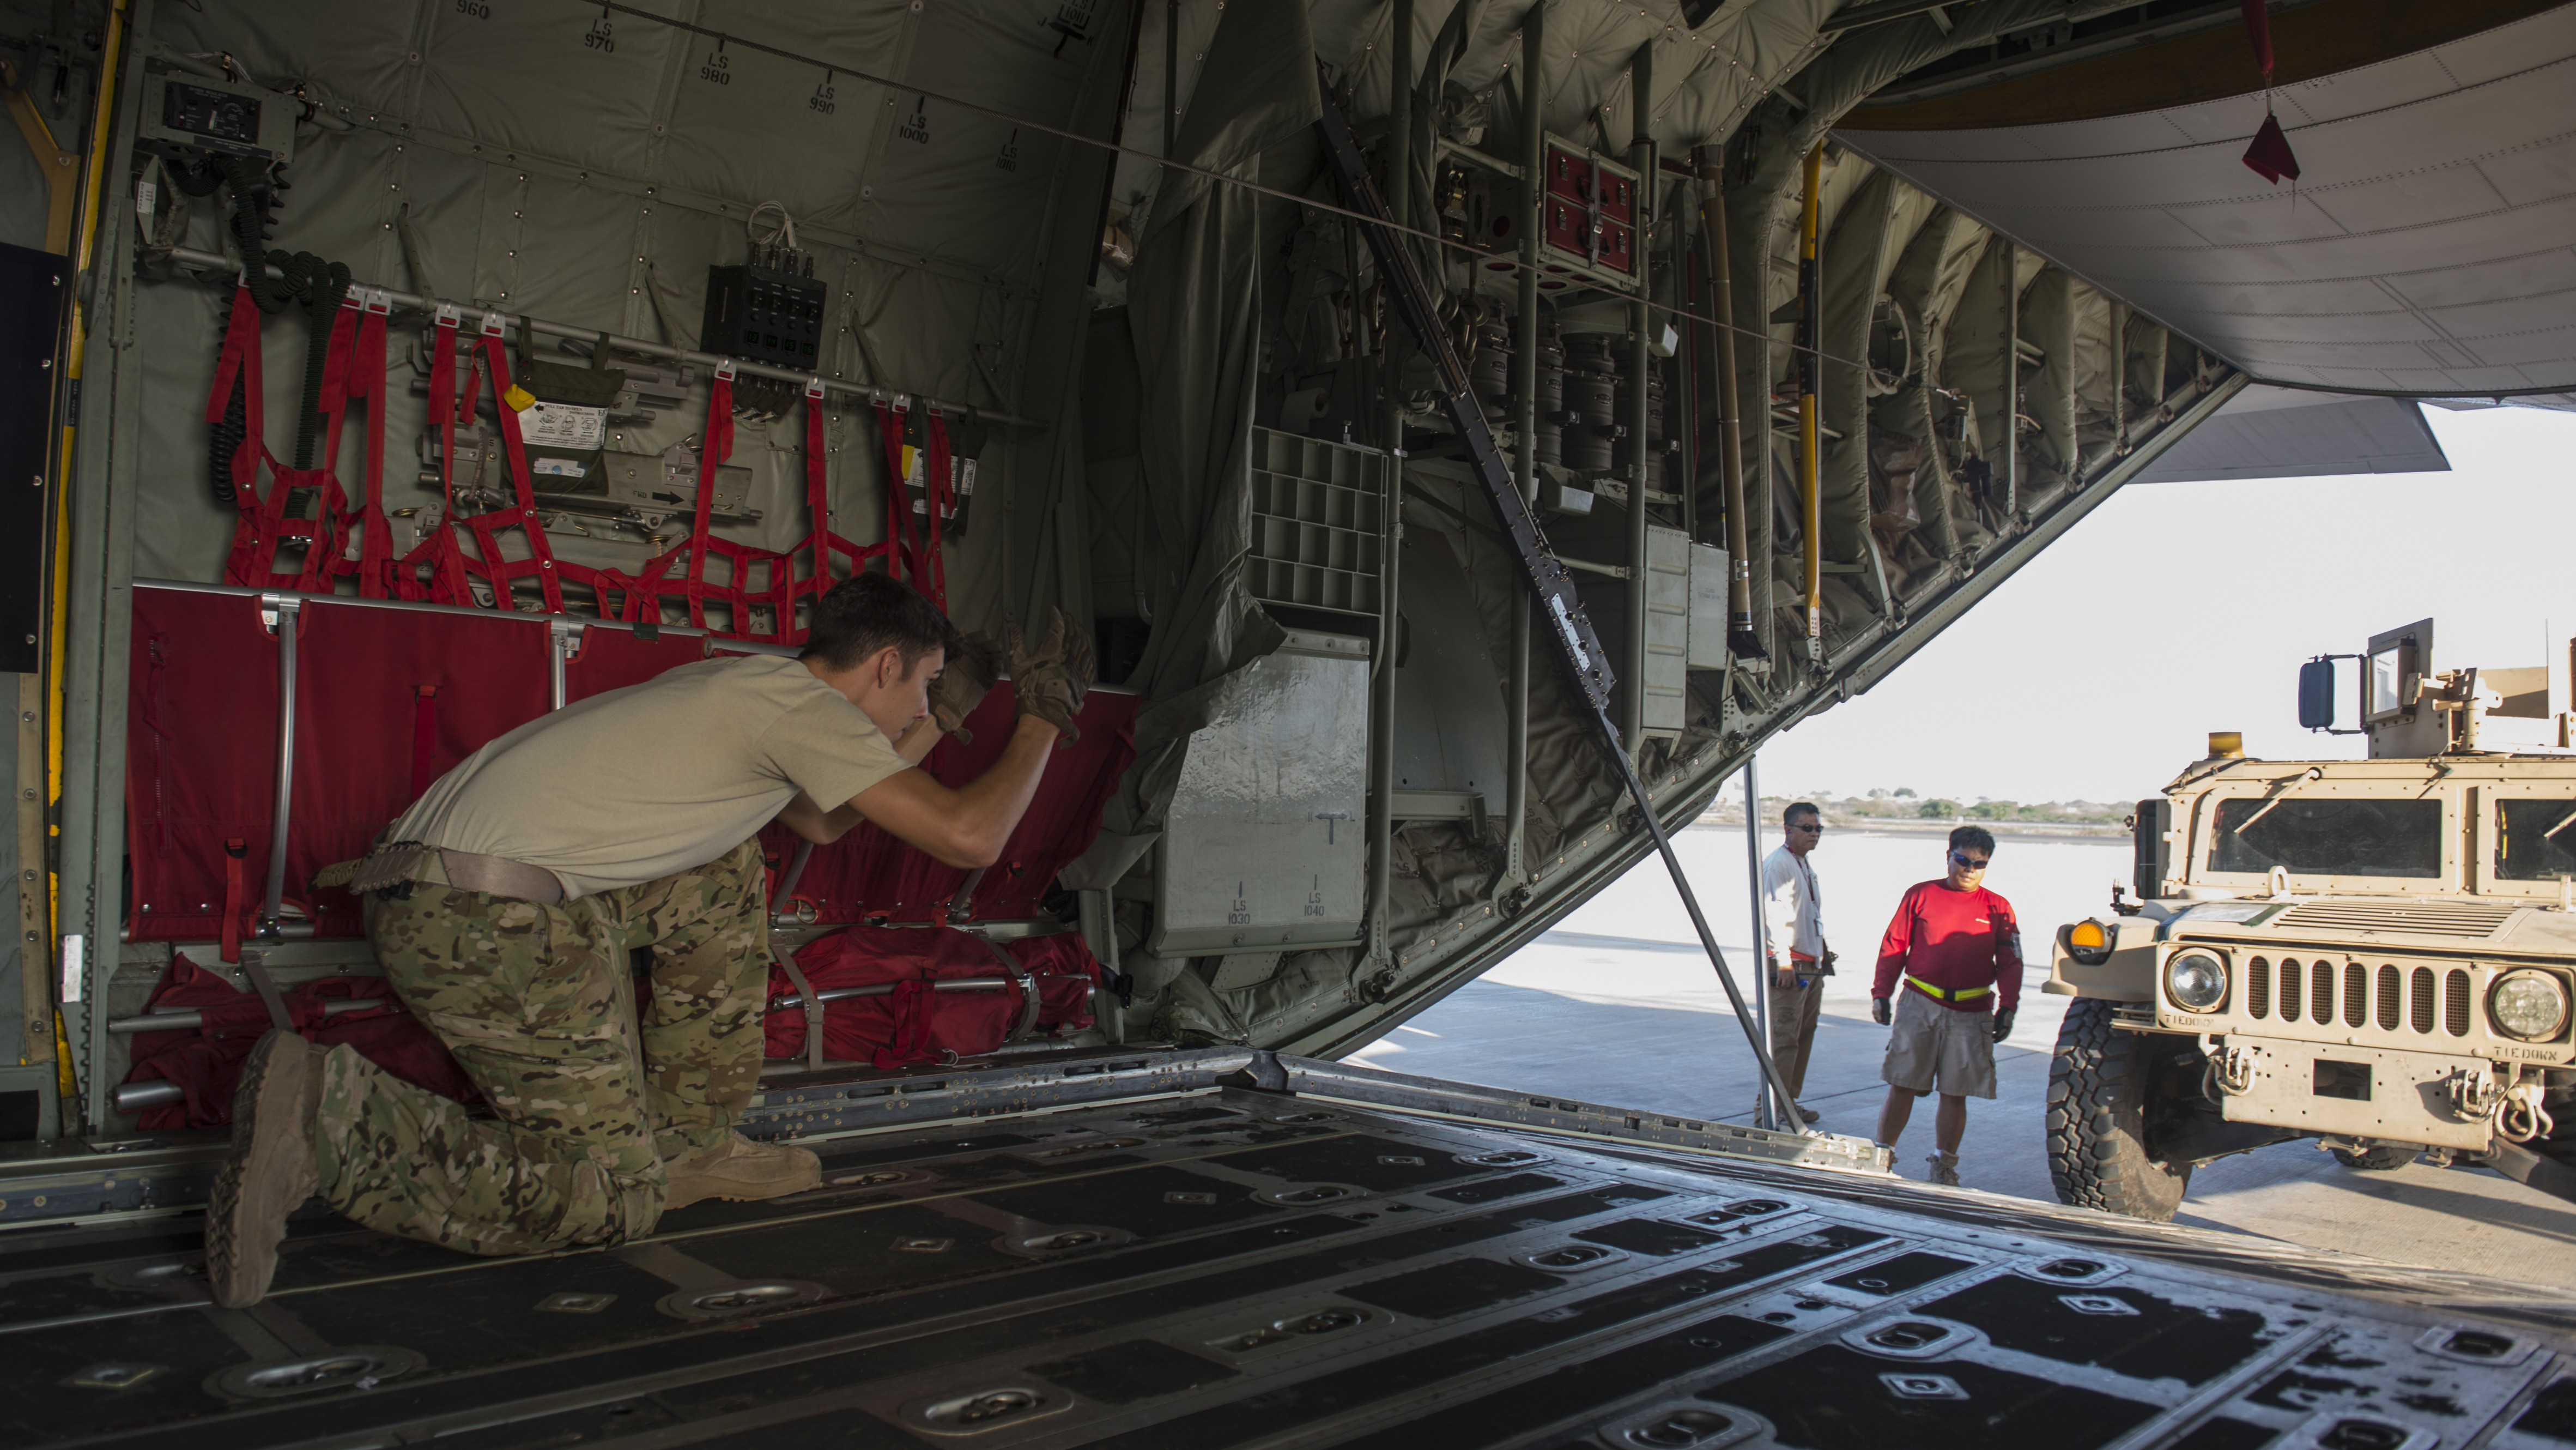 Senior Airman Zachary McGhee, 75th Expeditionary Airlift Squadron loadmaster, directs a Charlie Co. 2-124 up-armored Humvee into a C-130J Super Hercules Nov. 24, 2015, at Camp Lemonnier, Djibouti. The vehicle was delivered to a forward operating location where it will be used to conduct patrols and increase force protection posture. (U.S. Air Force photo by Senior Airman Peter Thompson)